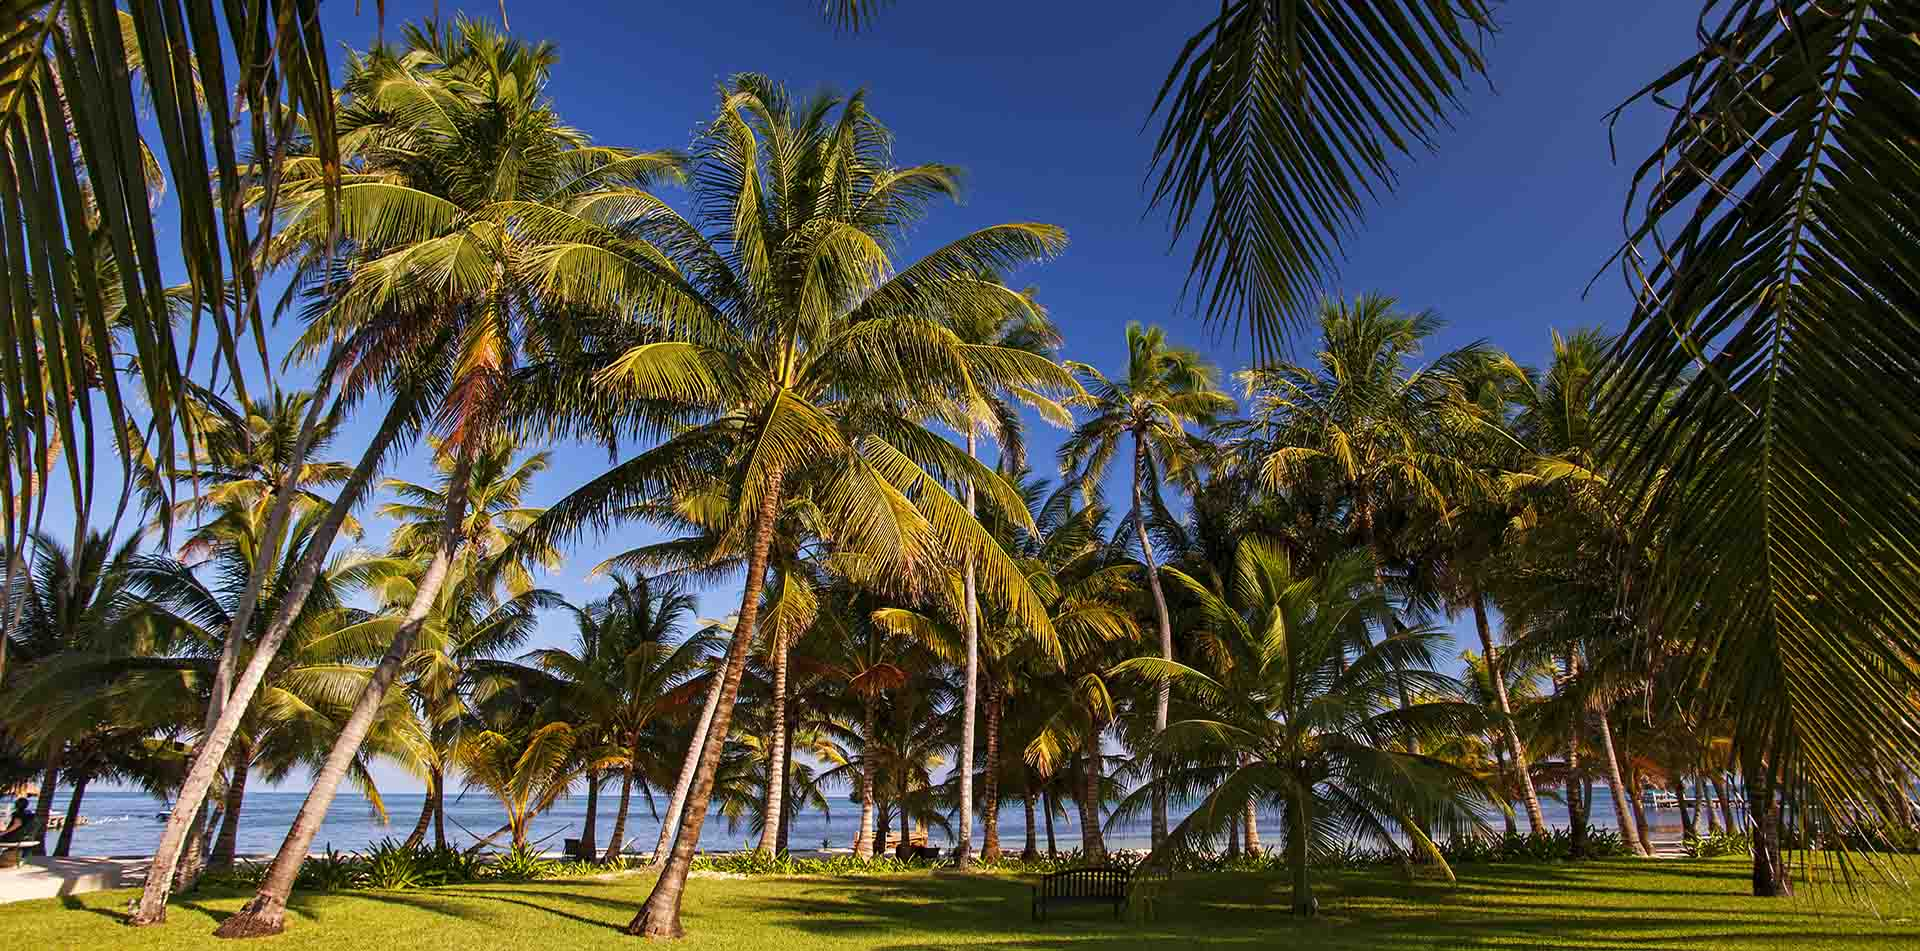 Victoria House Grounds, Belize